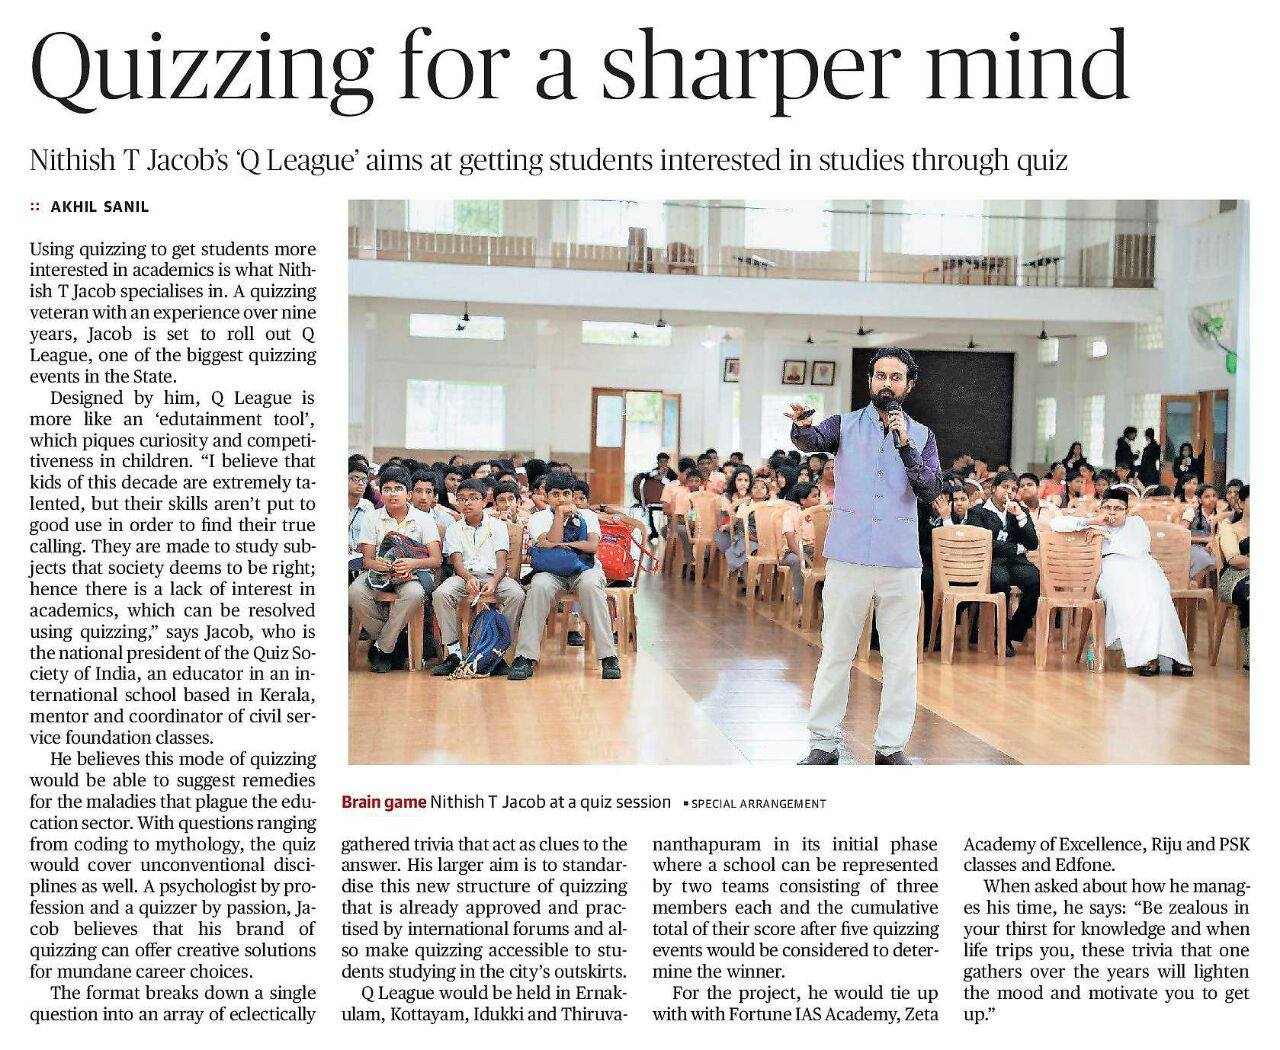 Quizzing for a sharper mind- The Hindu